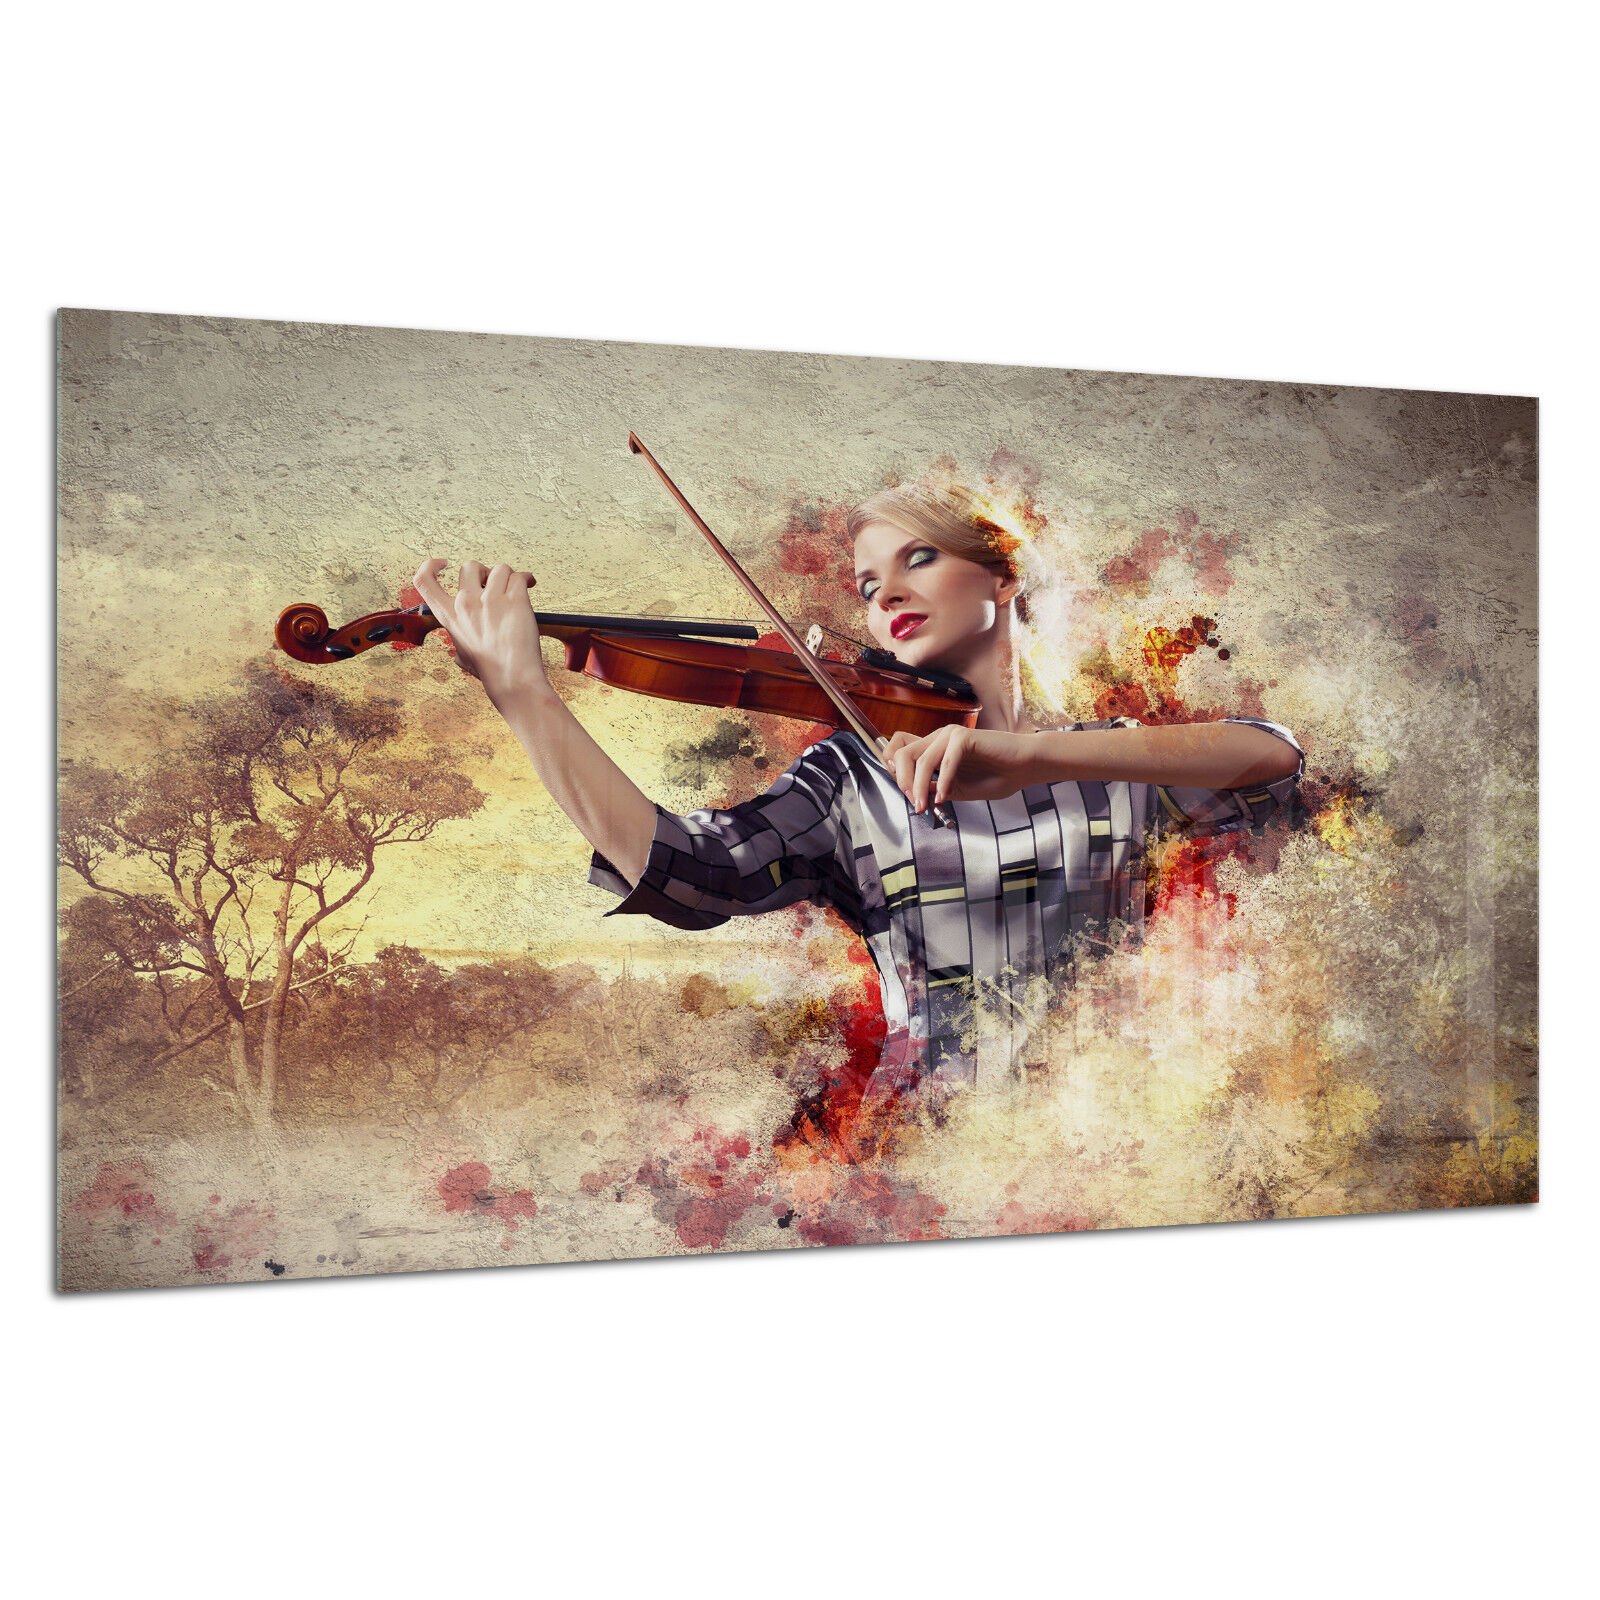 Verre Trempé femme Impression Photo Wall Art Photo femme Trempé musique violoniste Prizma GWA0325 614fa2